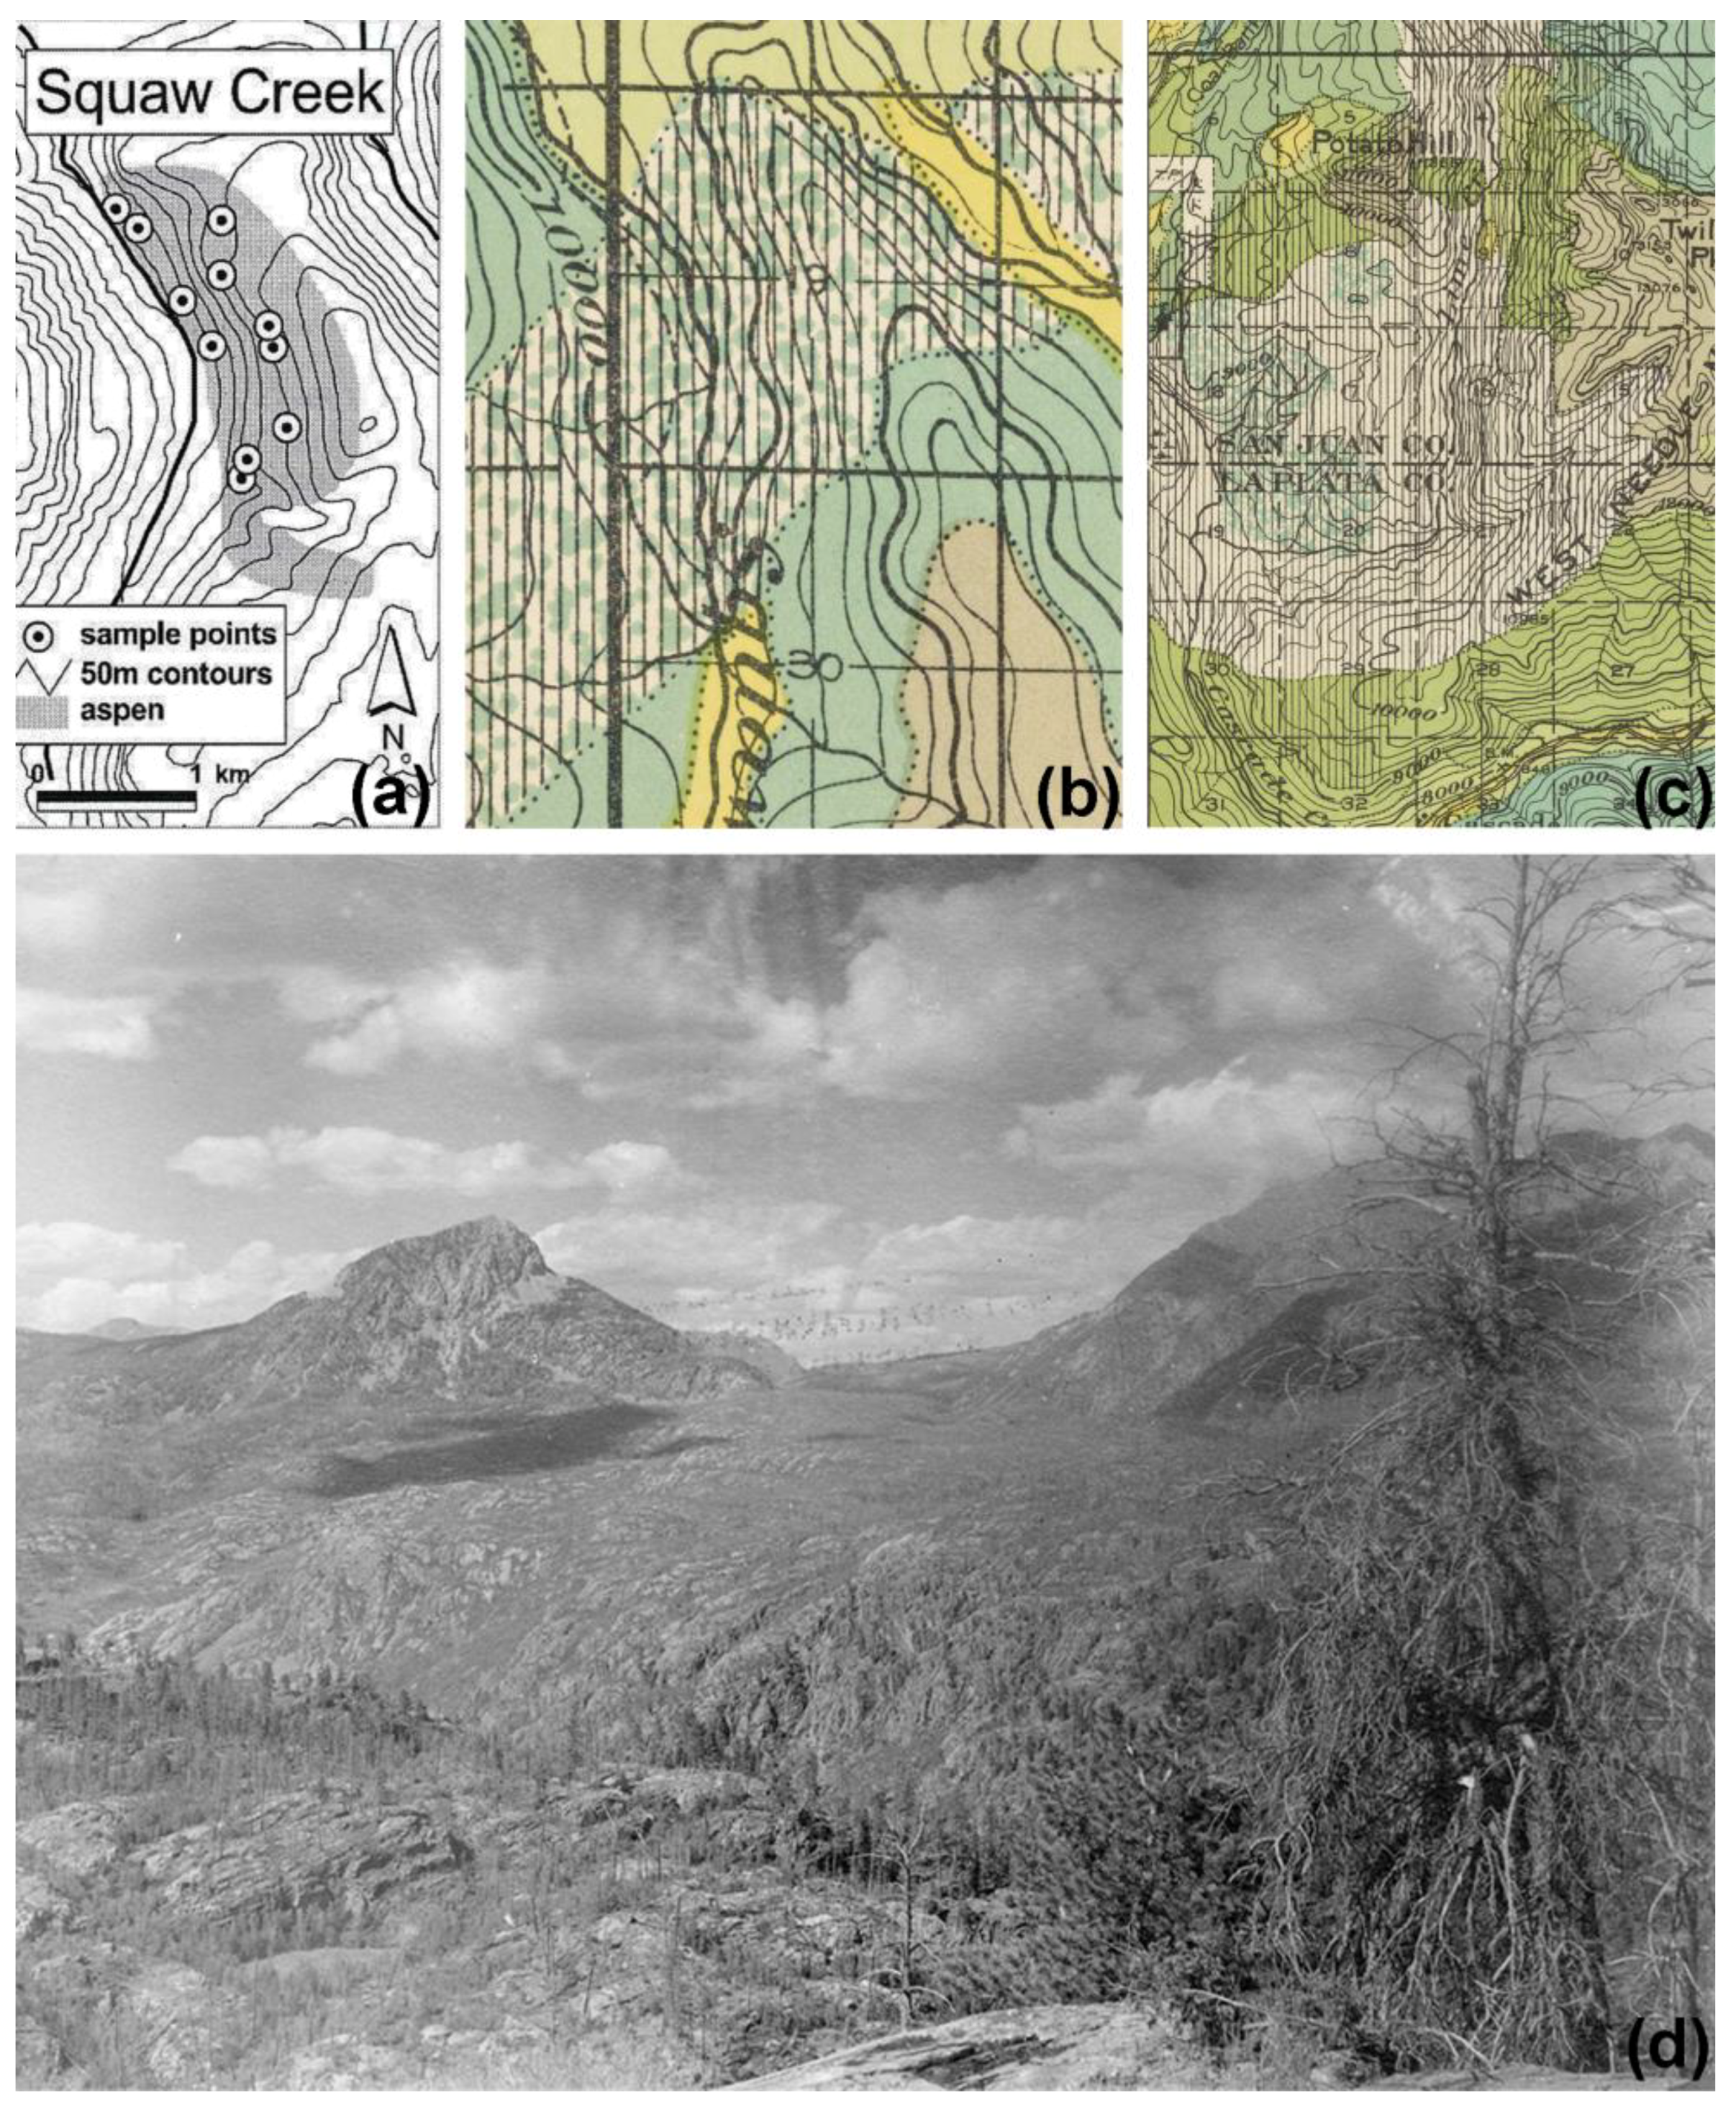 Fire | Free Full-Text | Historical Fire Regimes in Ponderosa